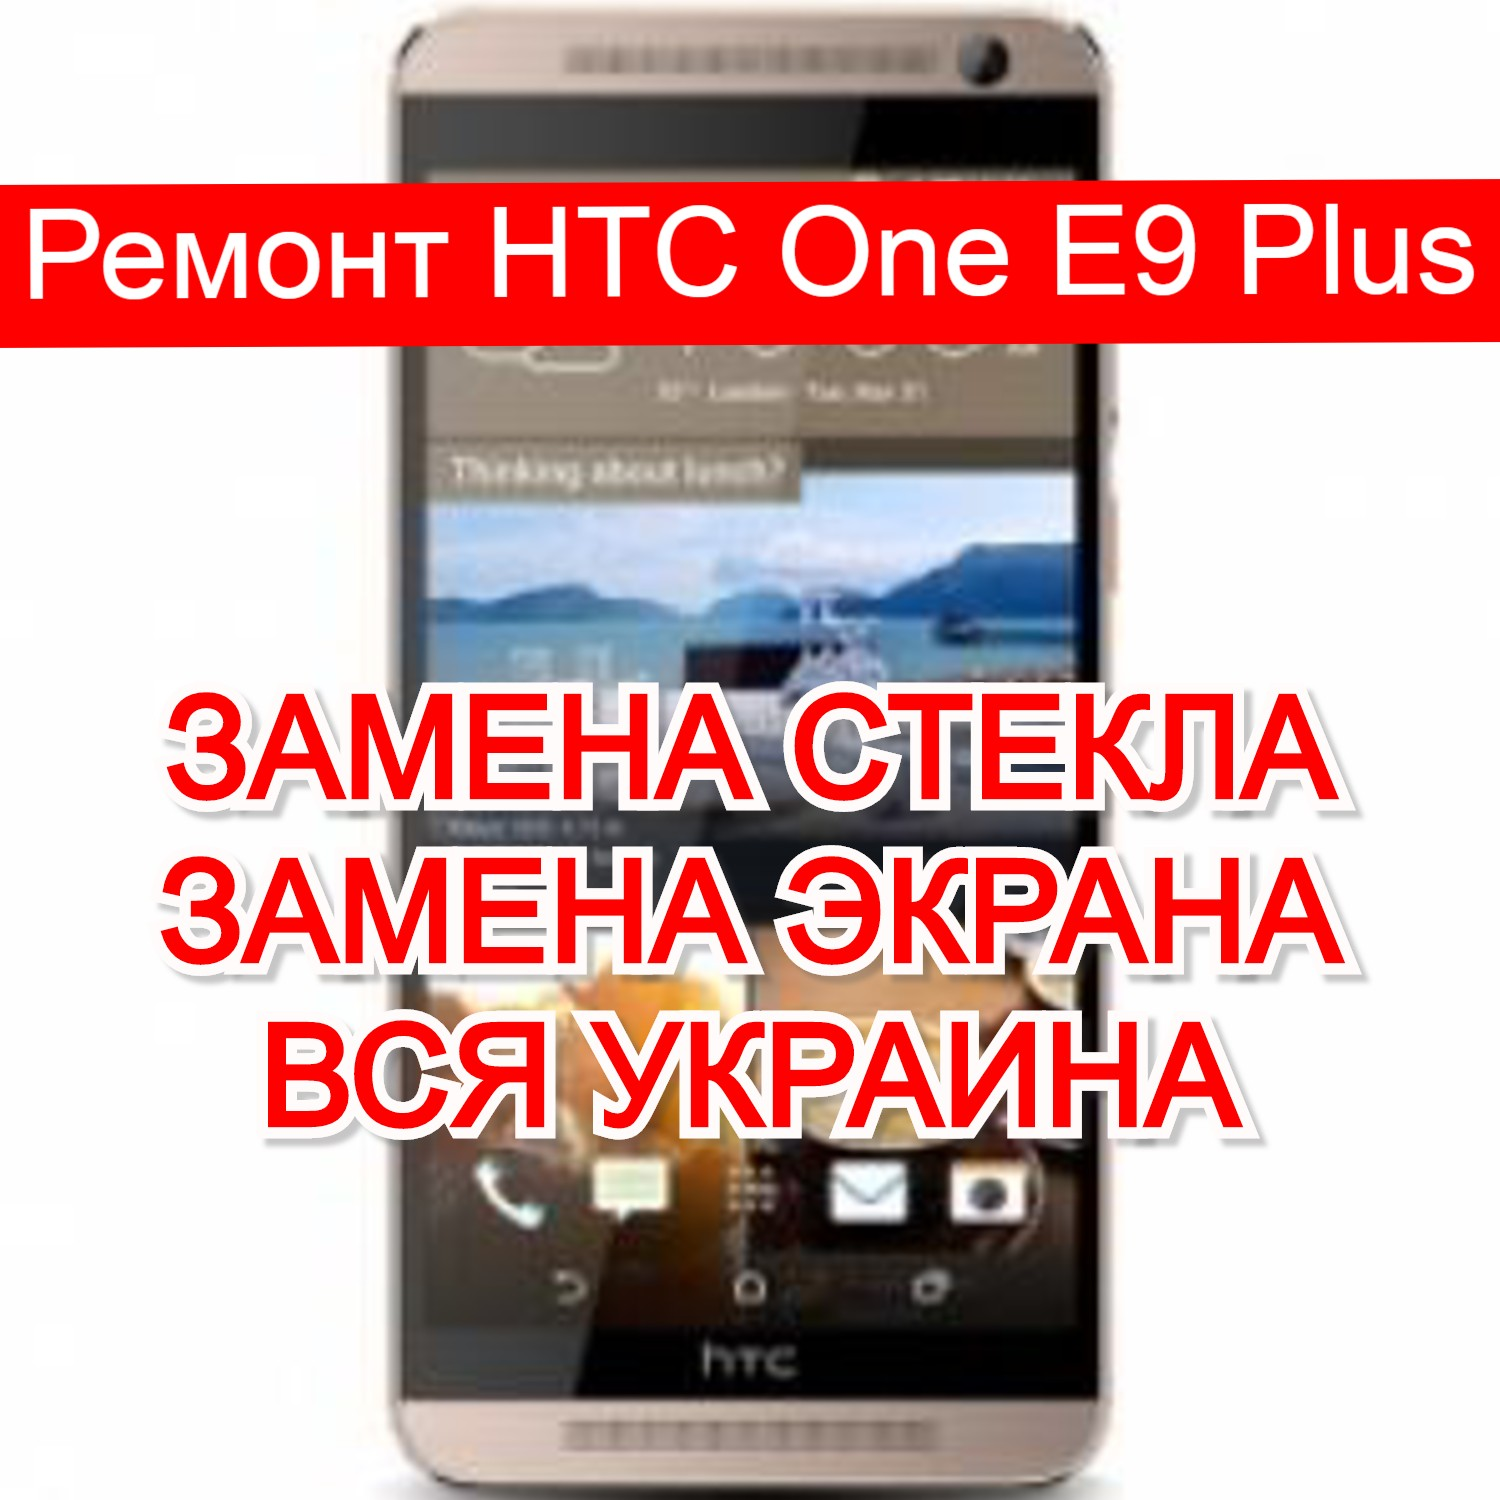 ремонт HTC One E9 Plus замена стекла и экрана